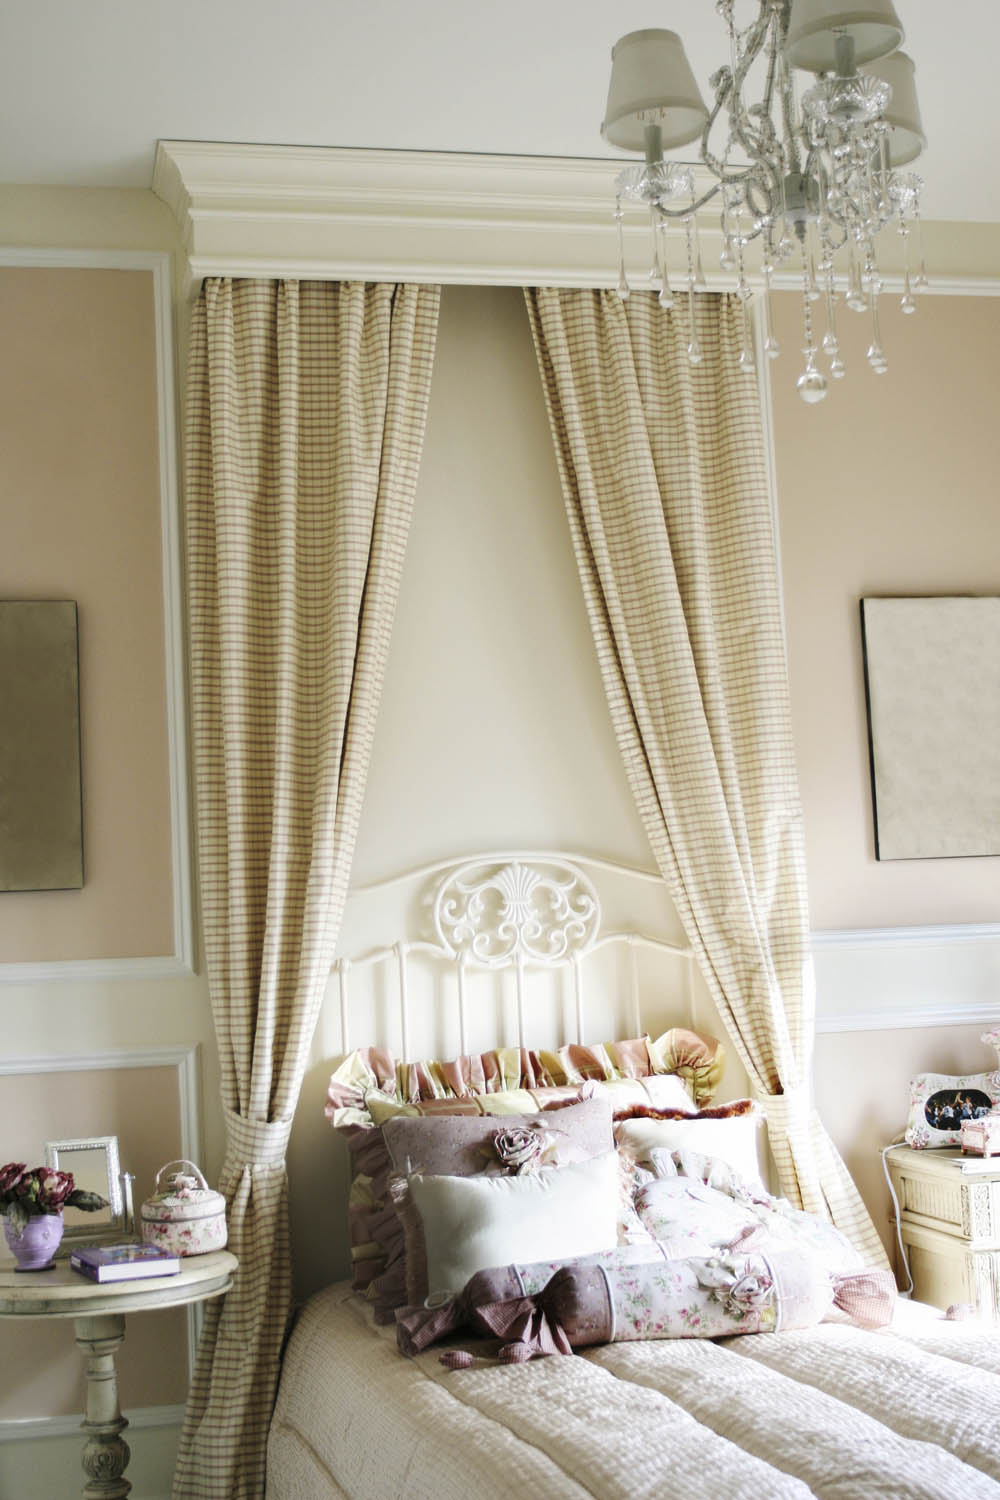 Canopy Drapes To Enhance An Antique Iron Bed Interior